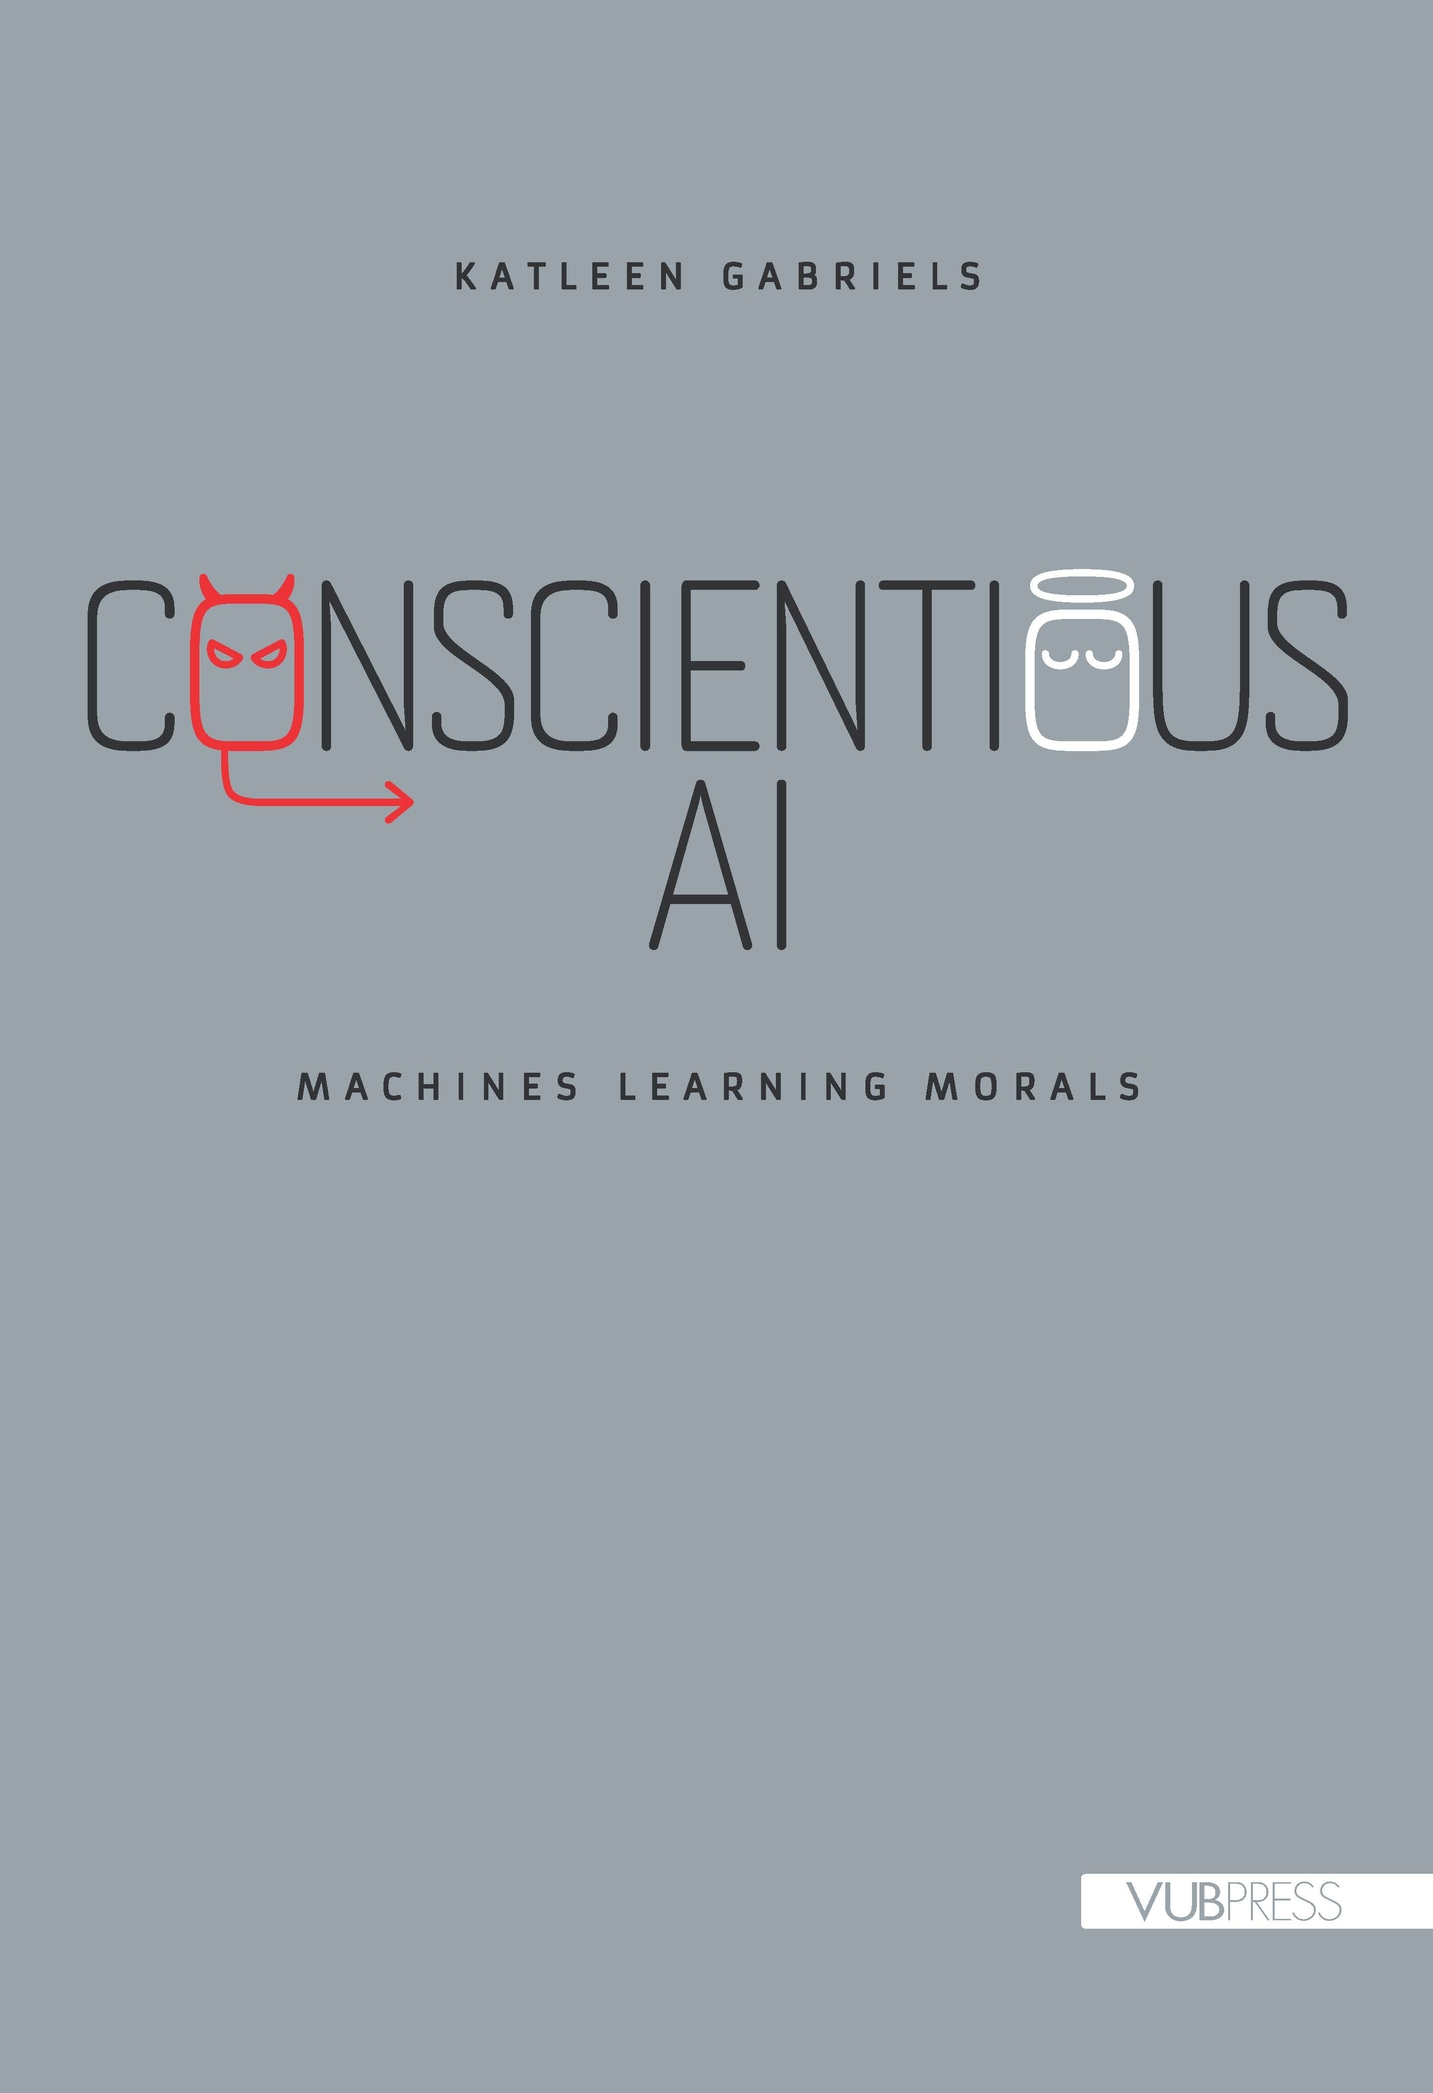 CONSCIENTIOUS AI